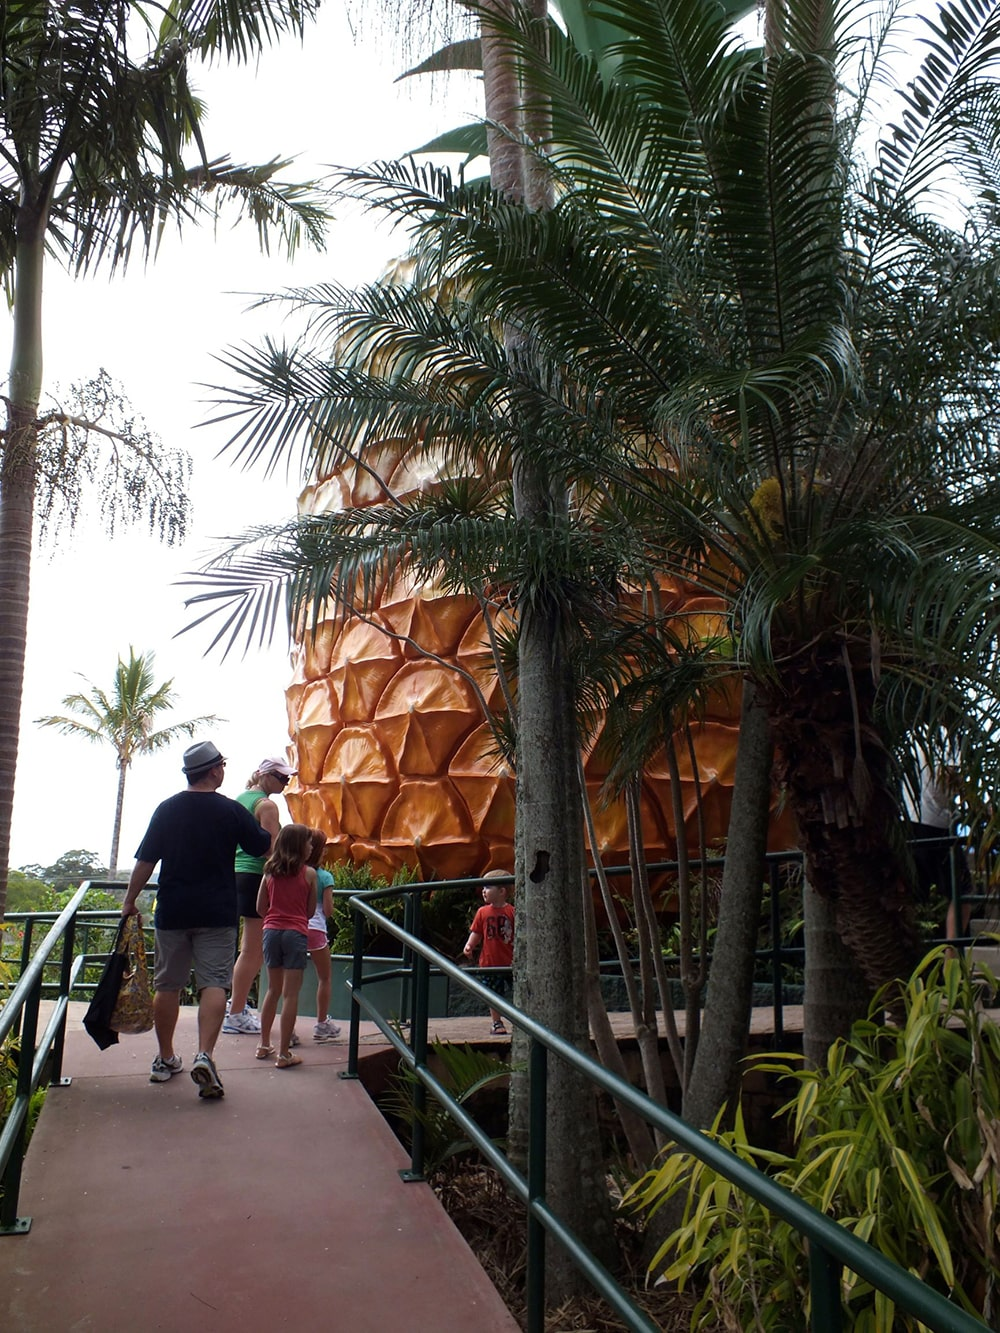 Big Pineapple tourist attraction in Nambour